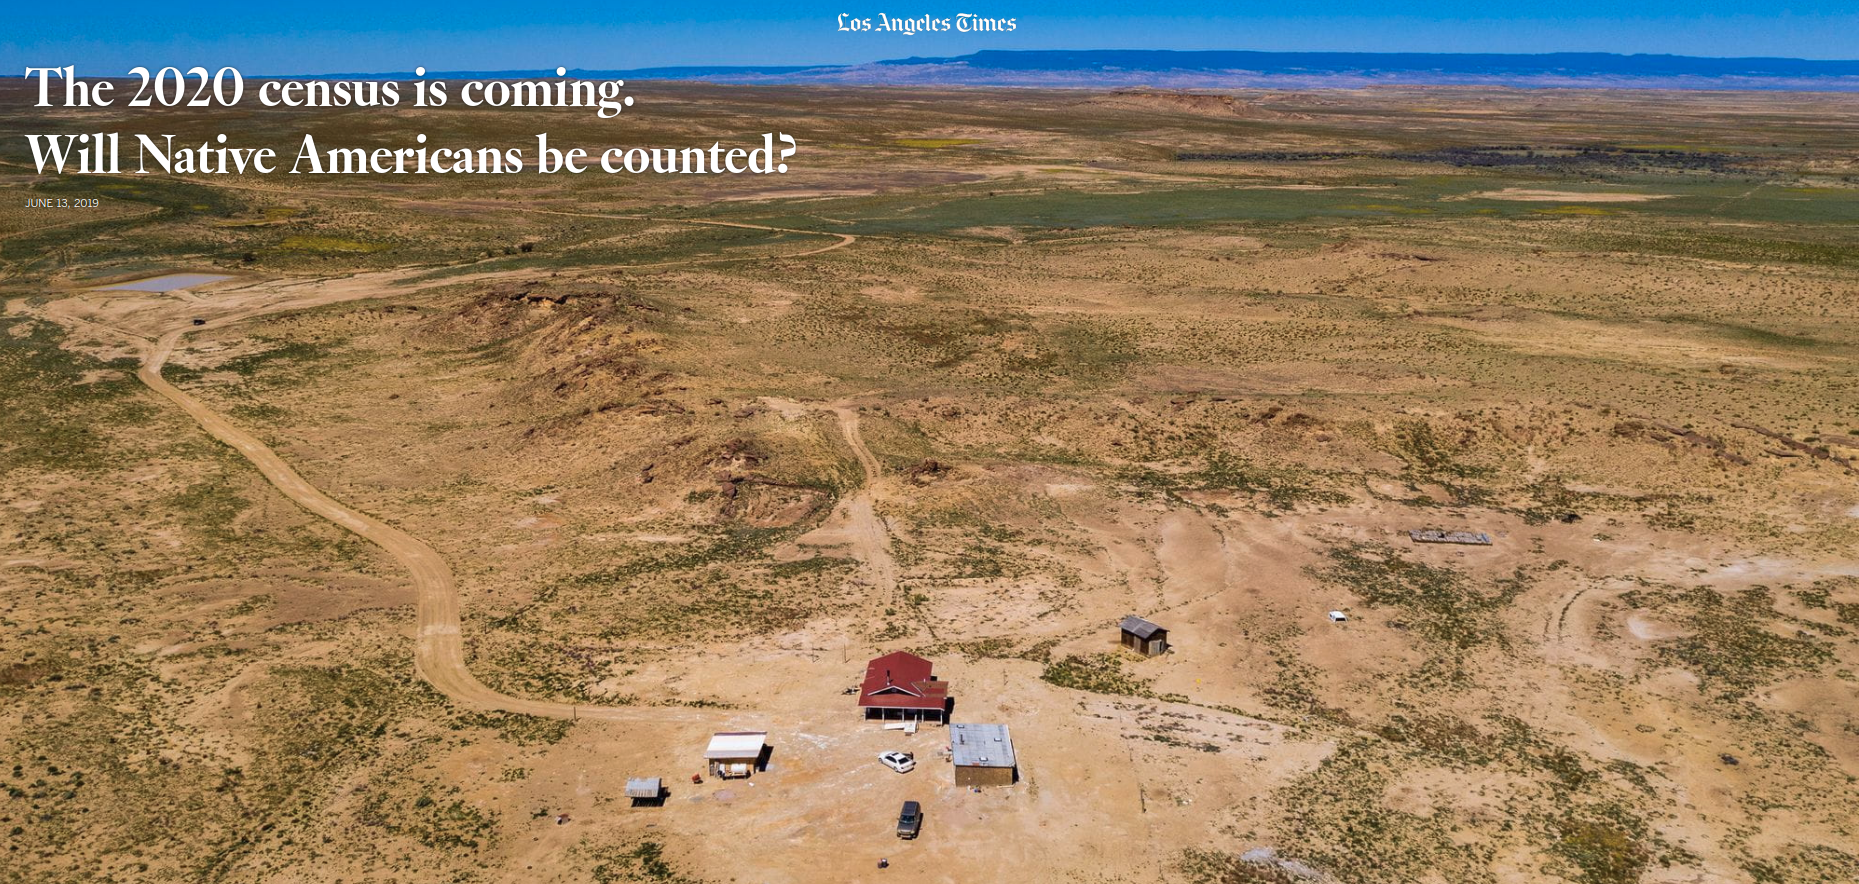 The 2020 census is coming. Will Native Americans be counted?